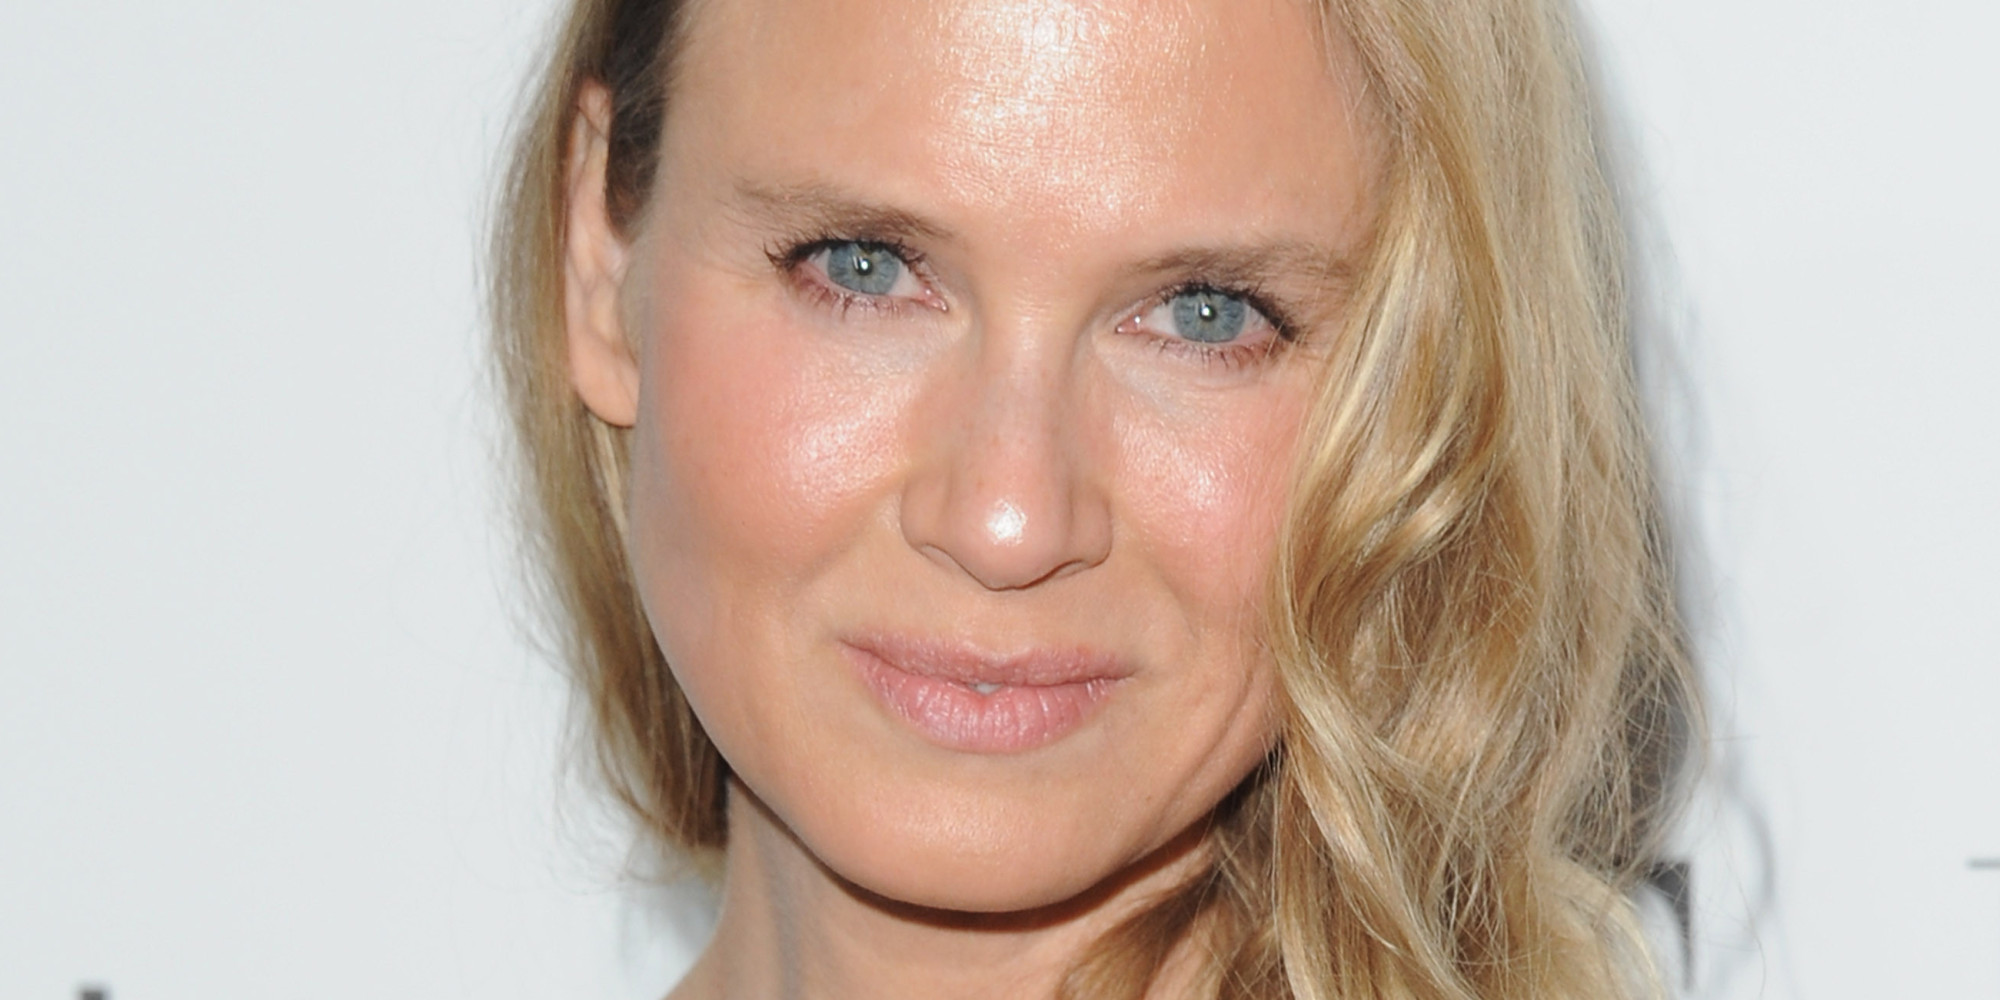 Renee Zellweger Speaks Out: 'I'm Glad Folks Think I Look Different ... Renee Zellweger